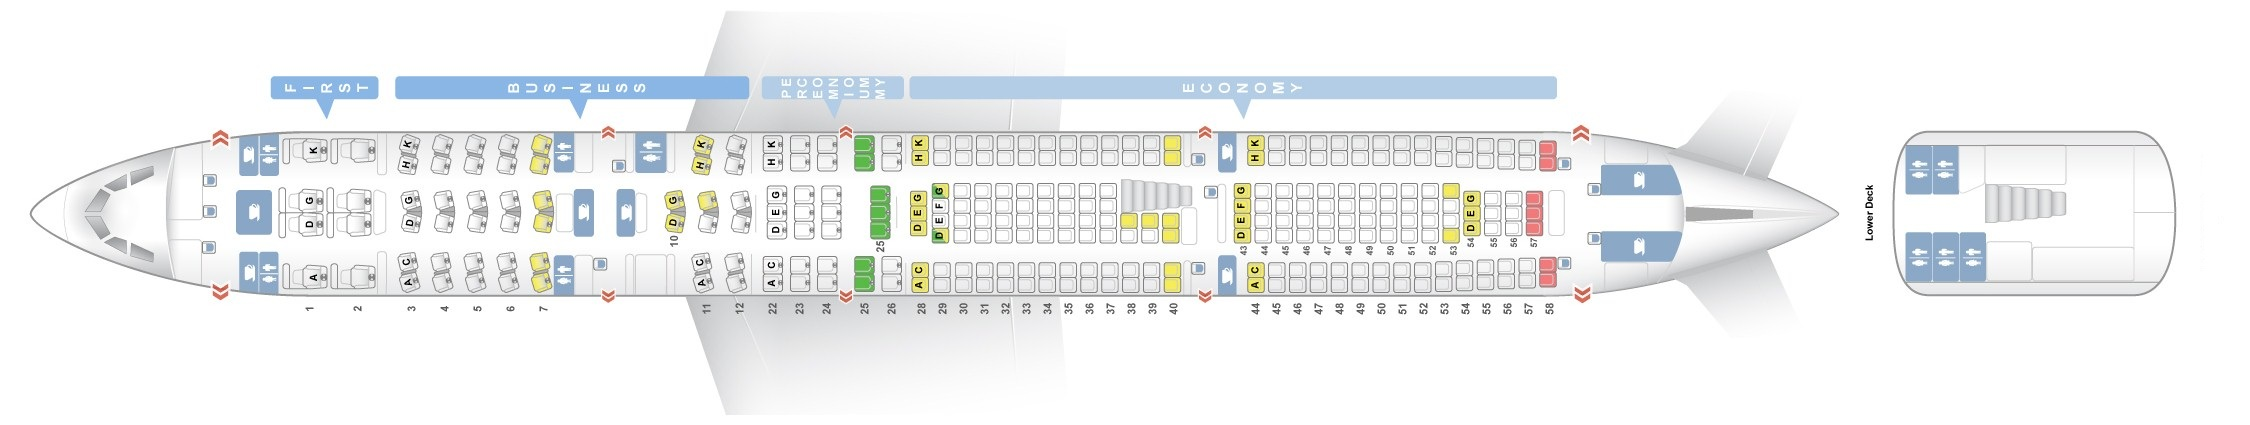 Seat Map Airbus A340 600 Lufthansa Best Seats In Plane